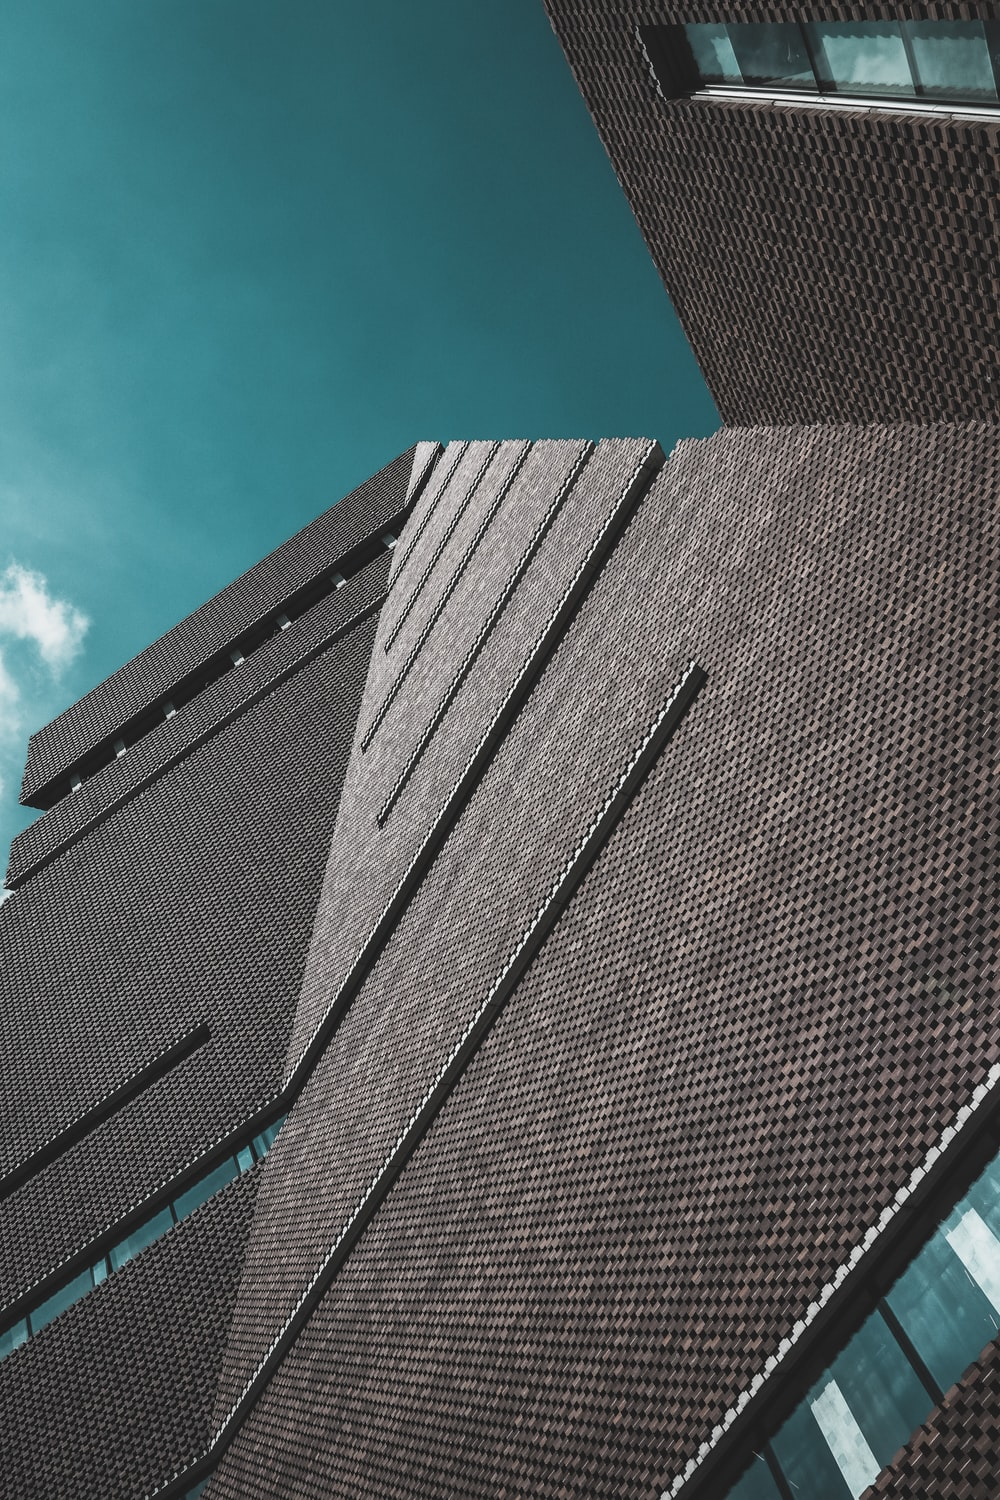 worm view of building during daytime